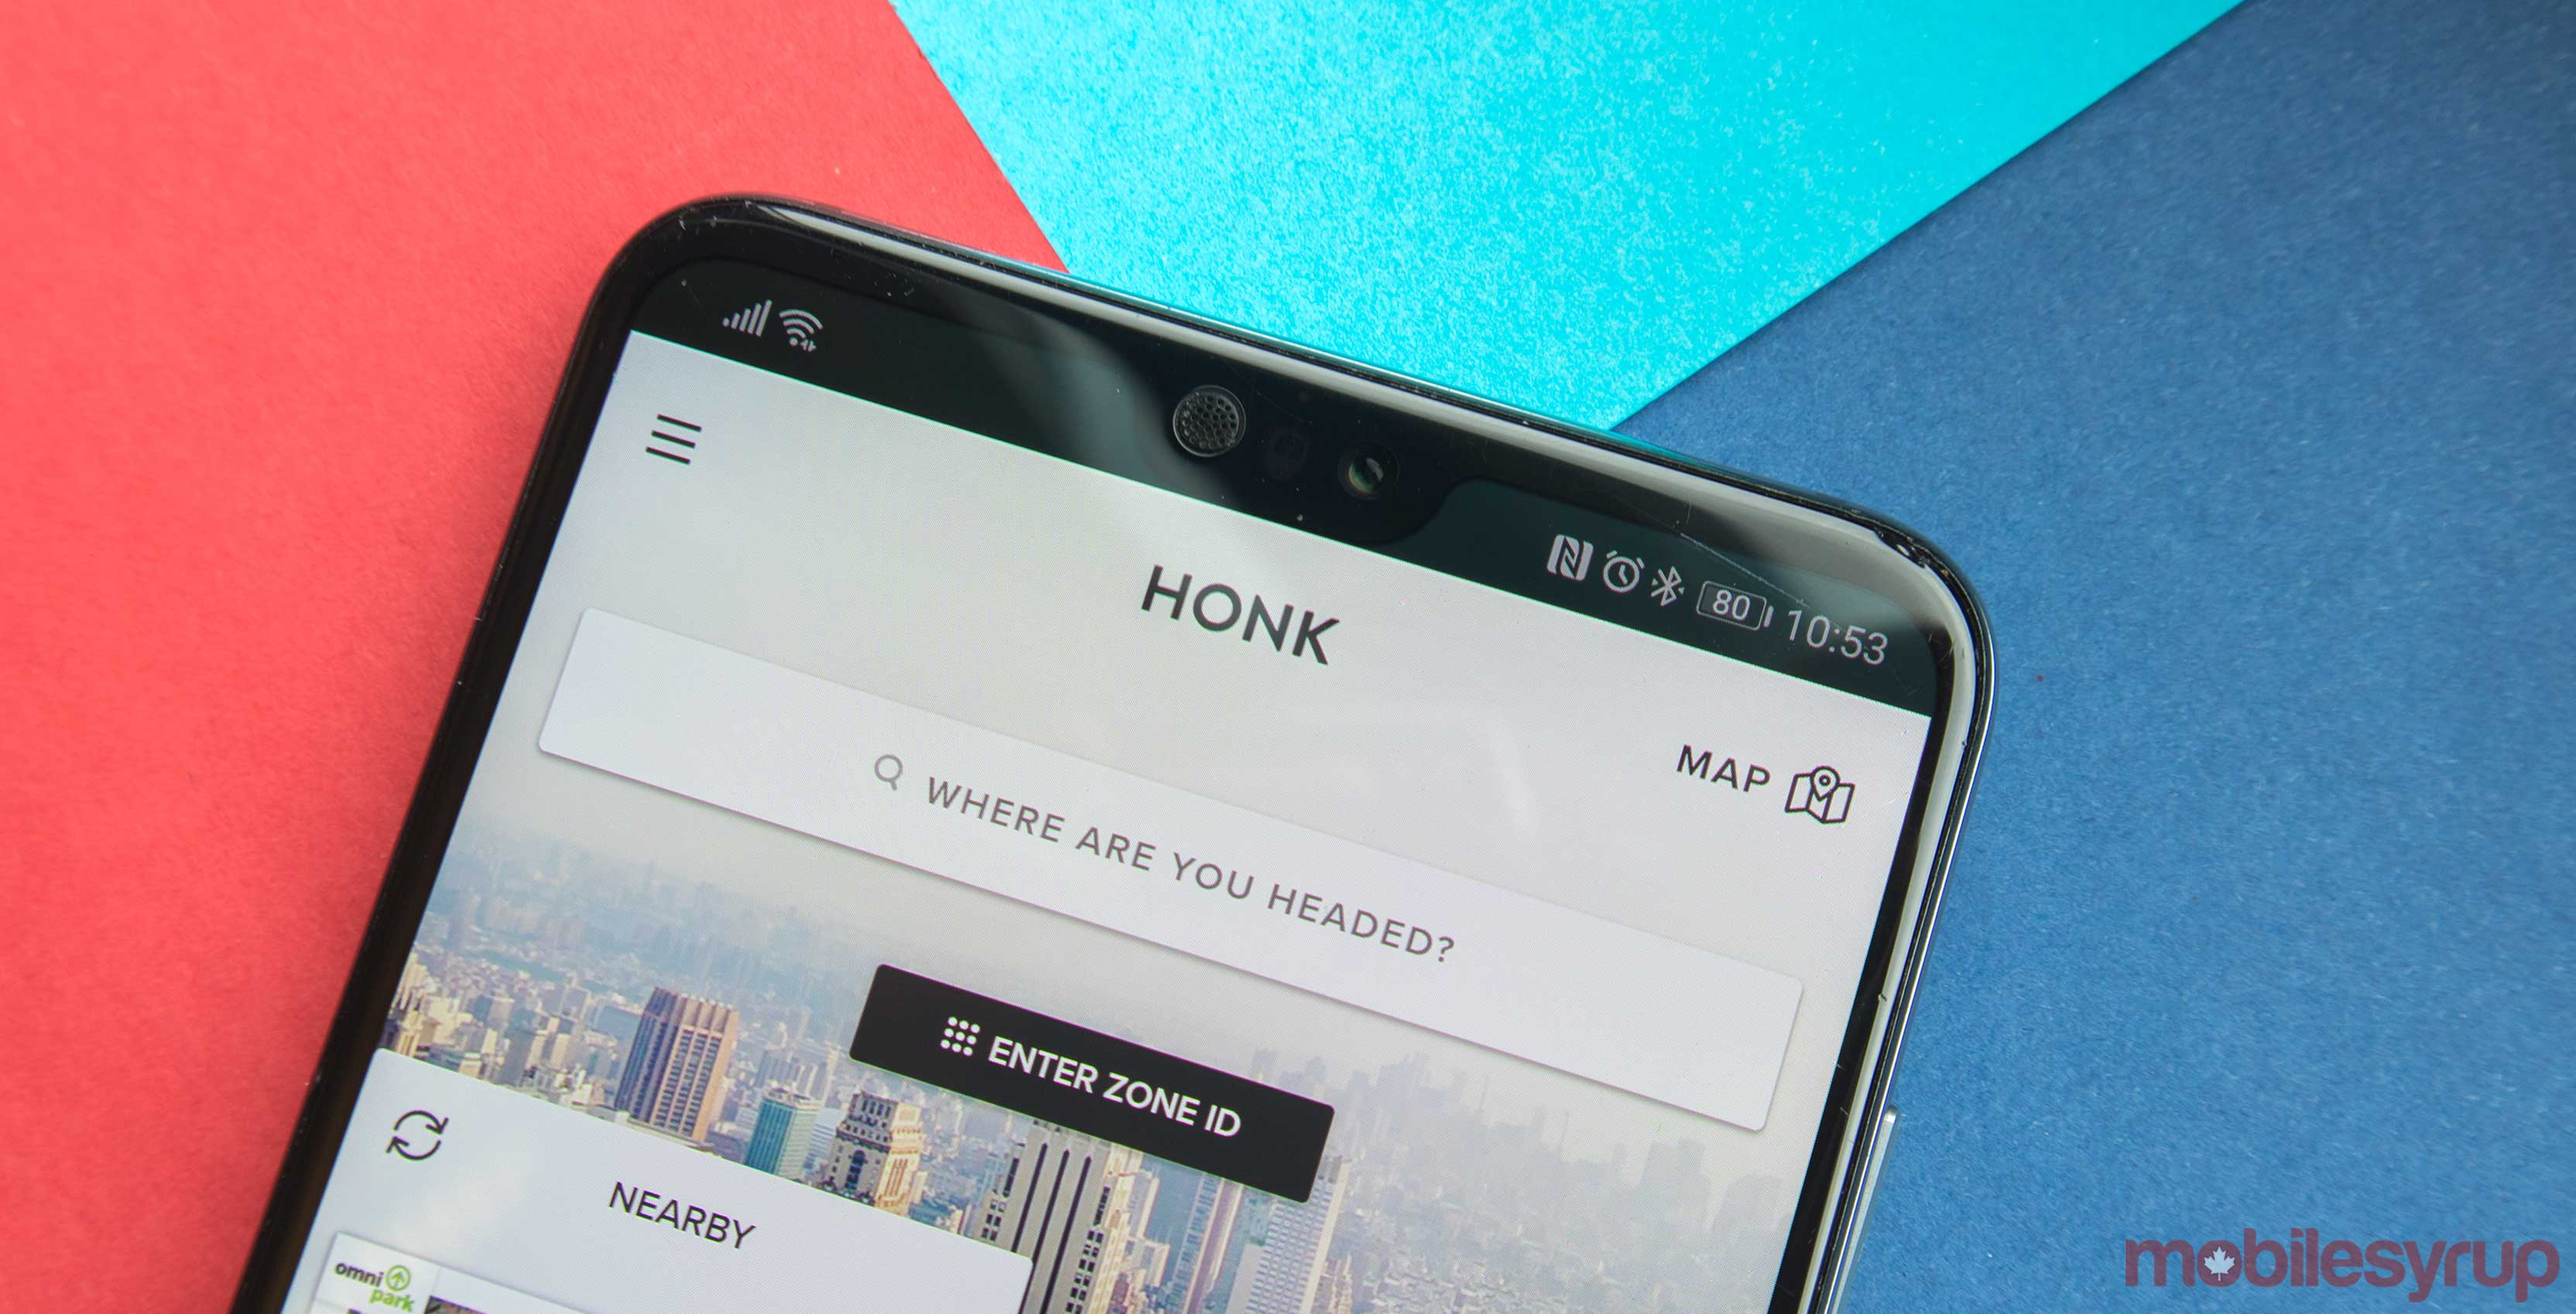 Canadian parking app HonkMobile is expanding to airports